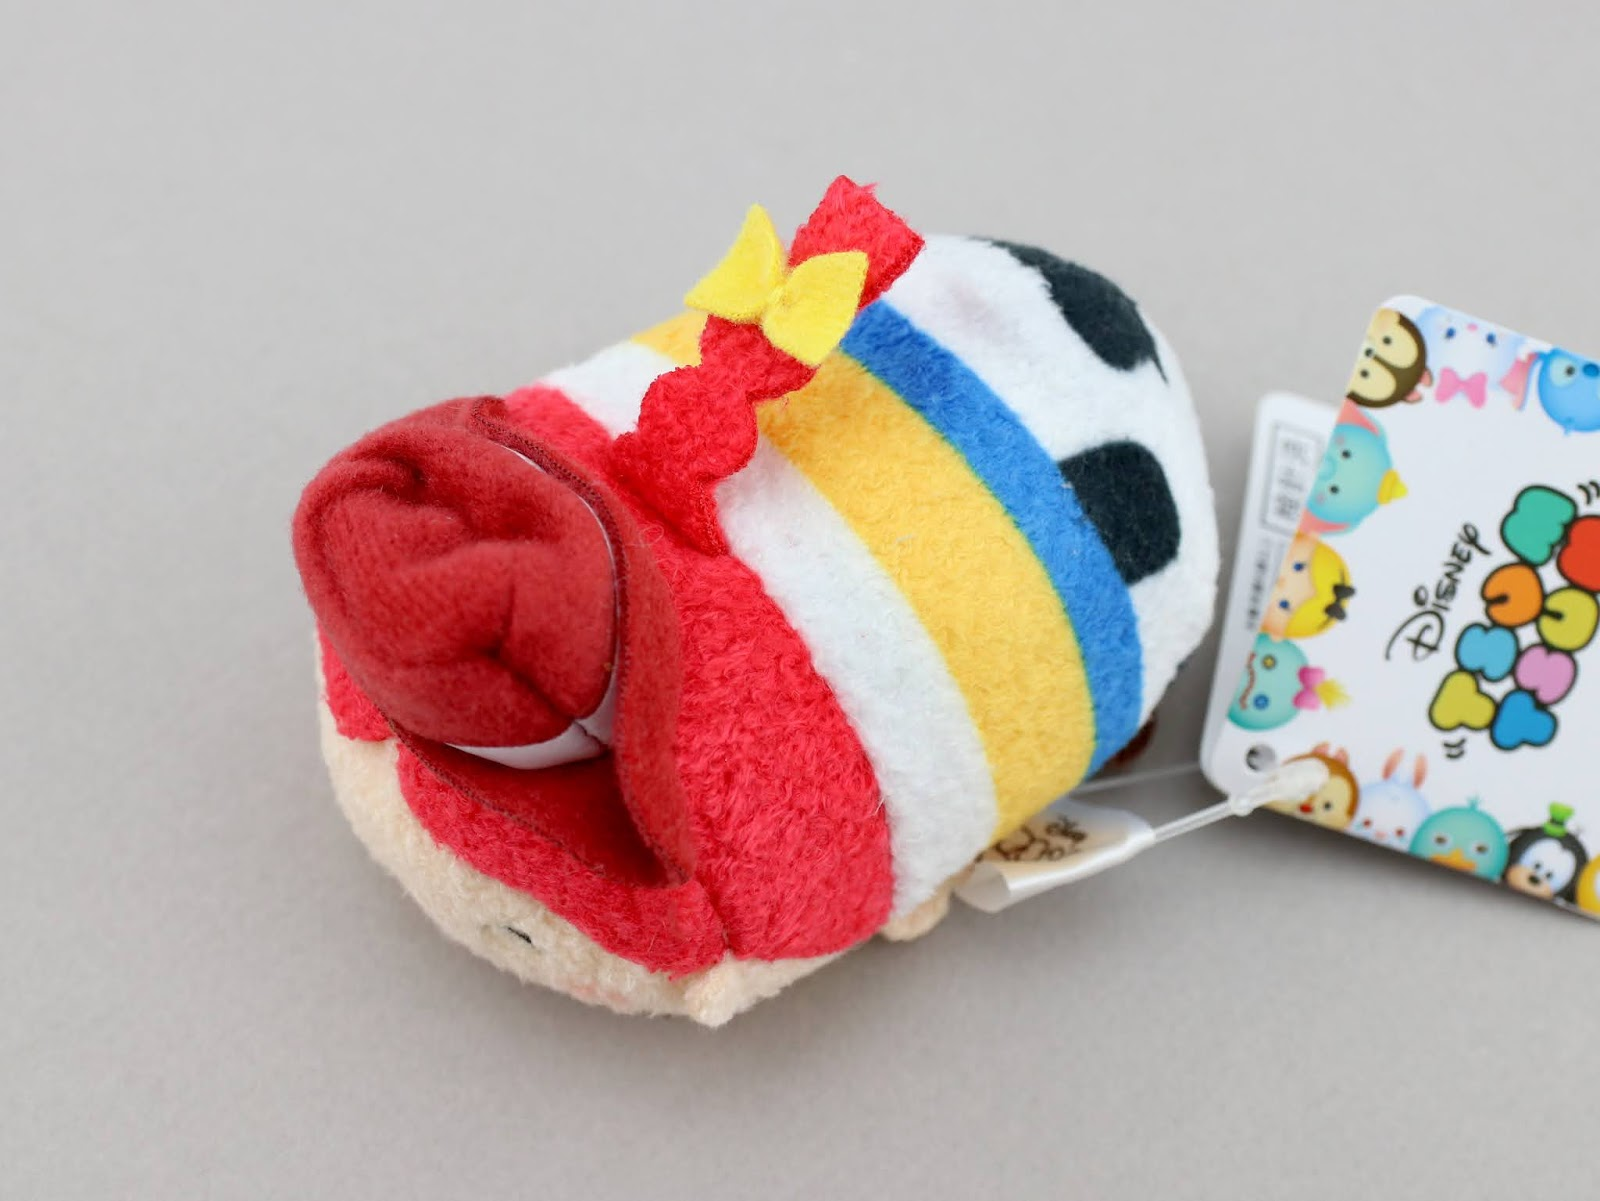 toy story 4 tsum tsums jessie